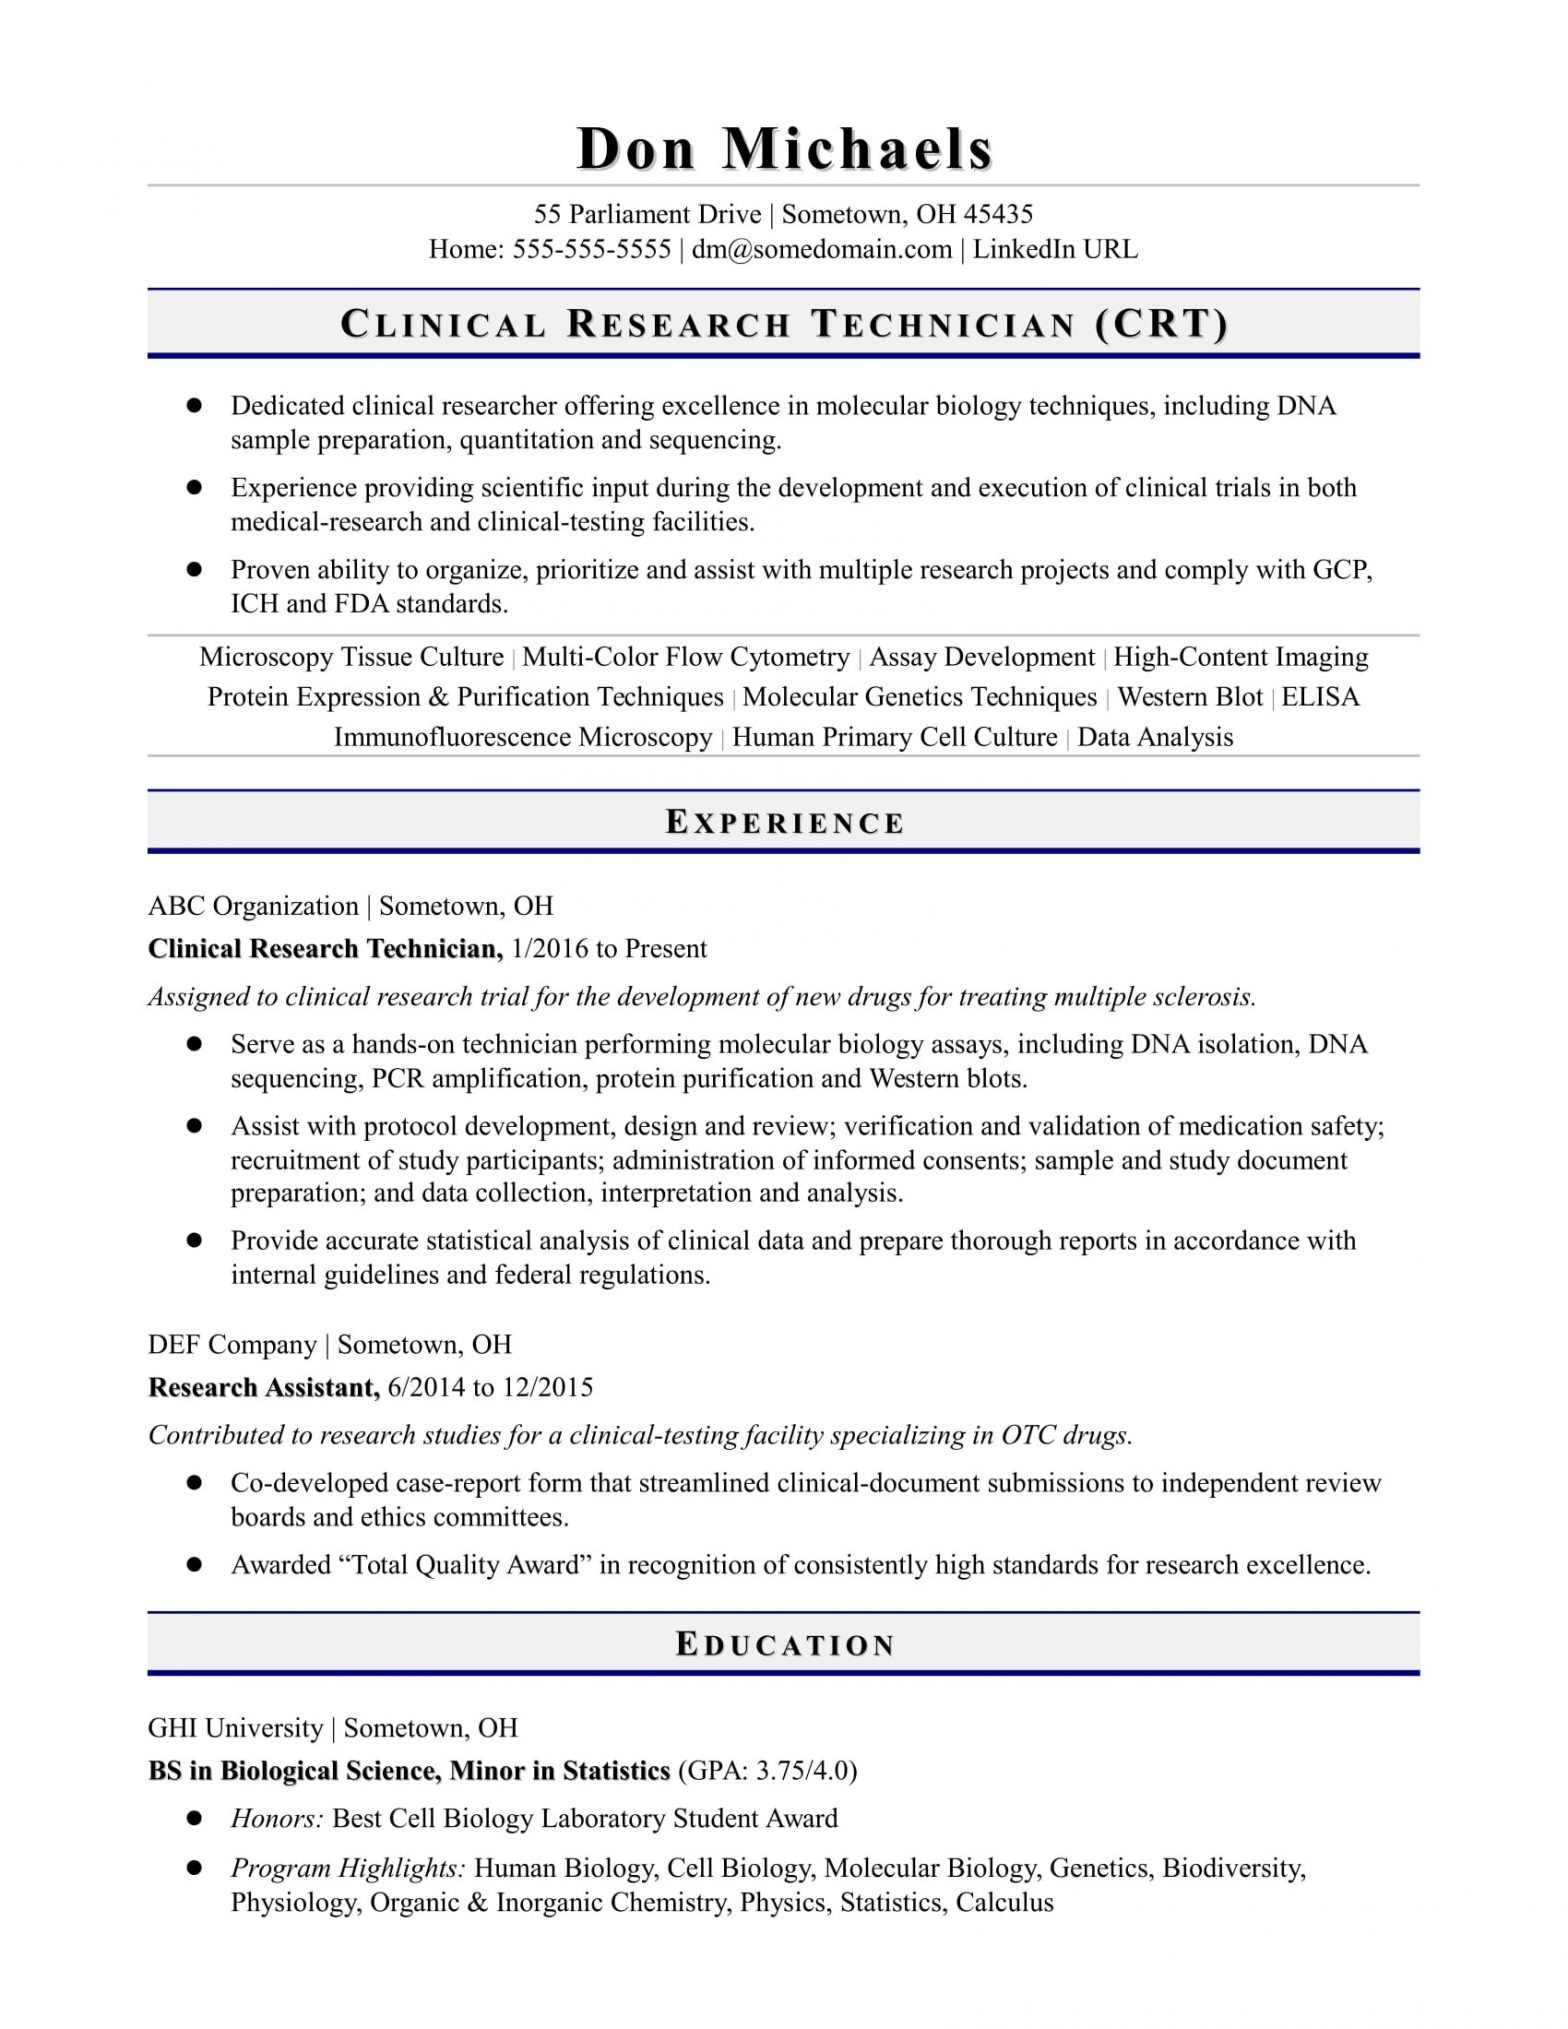 Entry Level Clinical Research associate Resume Sample Entry-level Research Technician Resume Sample Monster.com